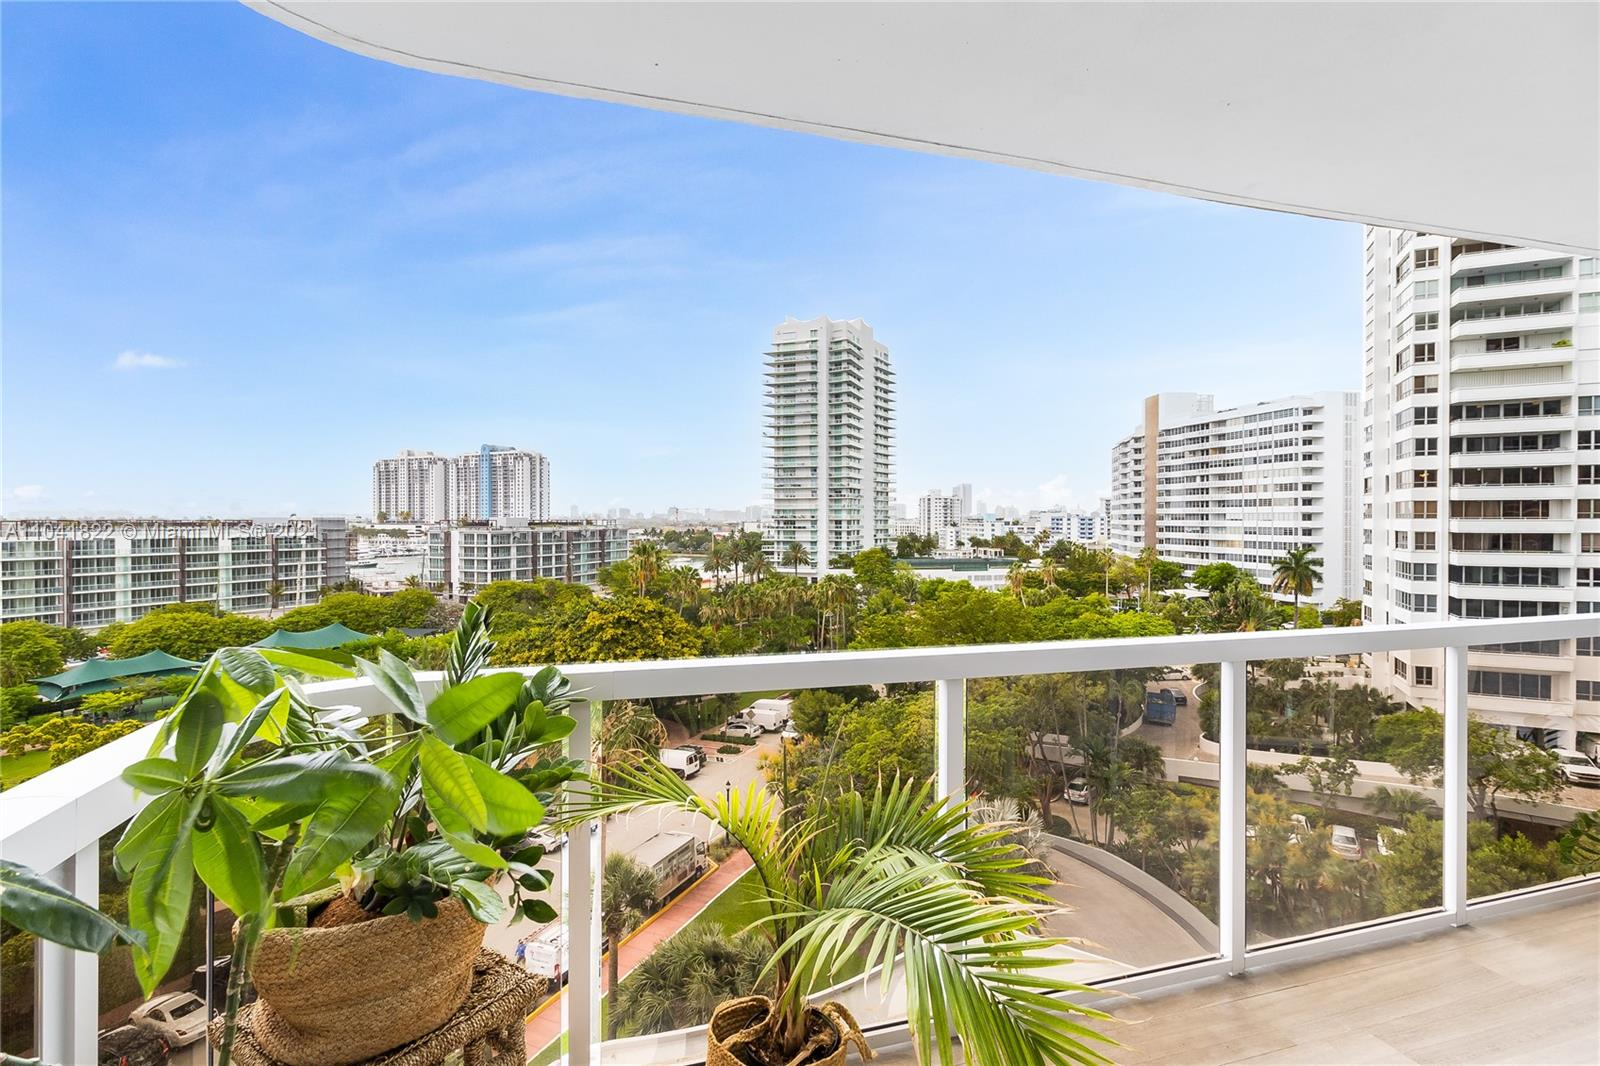 Live on the luxurious Venetian Isles for $648/sq ft! This move in ready 3/3 is the best priced family-sized condo on the waterfront. You deserve space to work from home and entertain - wide rooms , floor to ceiling windows and two 21-foot private terraces extend your living space. Feels like a house with no shared walls! Wide plank oak floors, modern eat-in-kitchen, double door entry, laundry room and 8 generous closets will keep you organized. Lobby, hallways and amenities have been updated with a captivating resort vibe. Established and secure condo w/ Bayfront pool, marina, outdoor grills, hot tubs, health club, tennis courts, resident lounge and on-site management. 2 garage spaces + storage. 40 year recertification well under way.